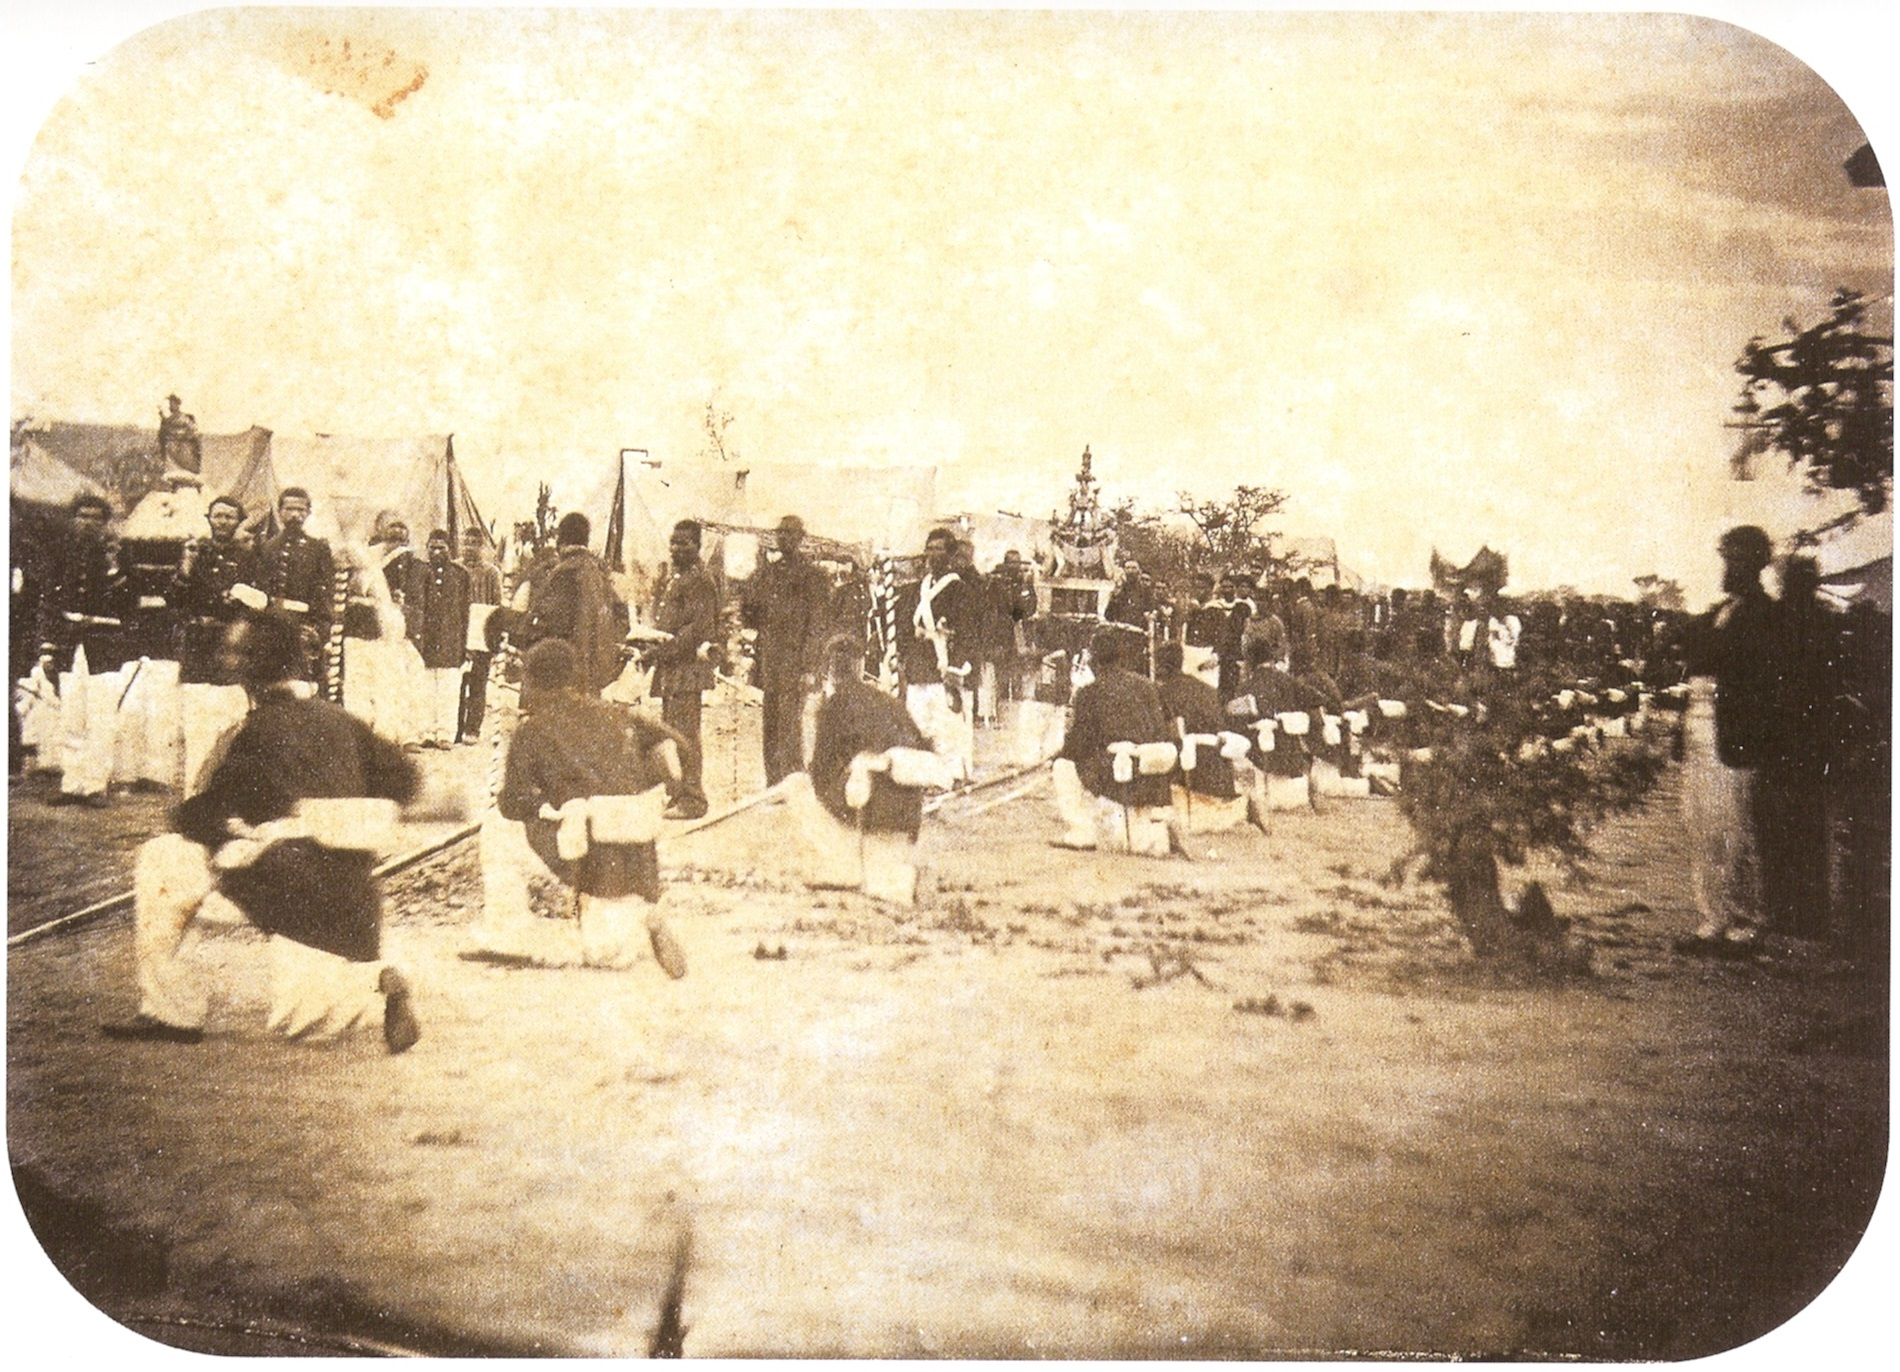 procession in paraguay 1868.jpg